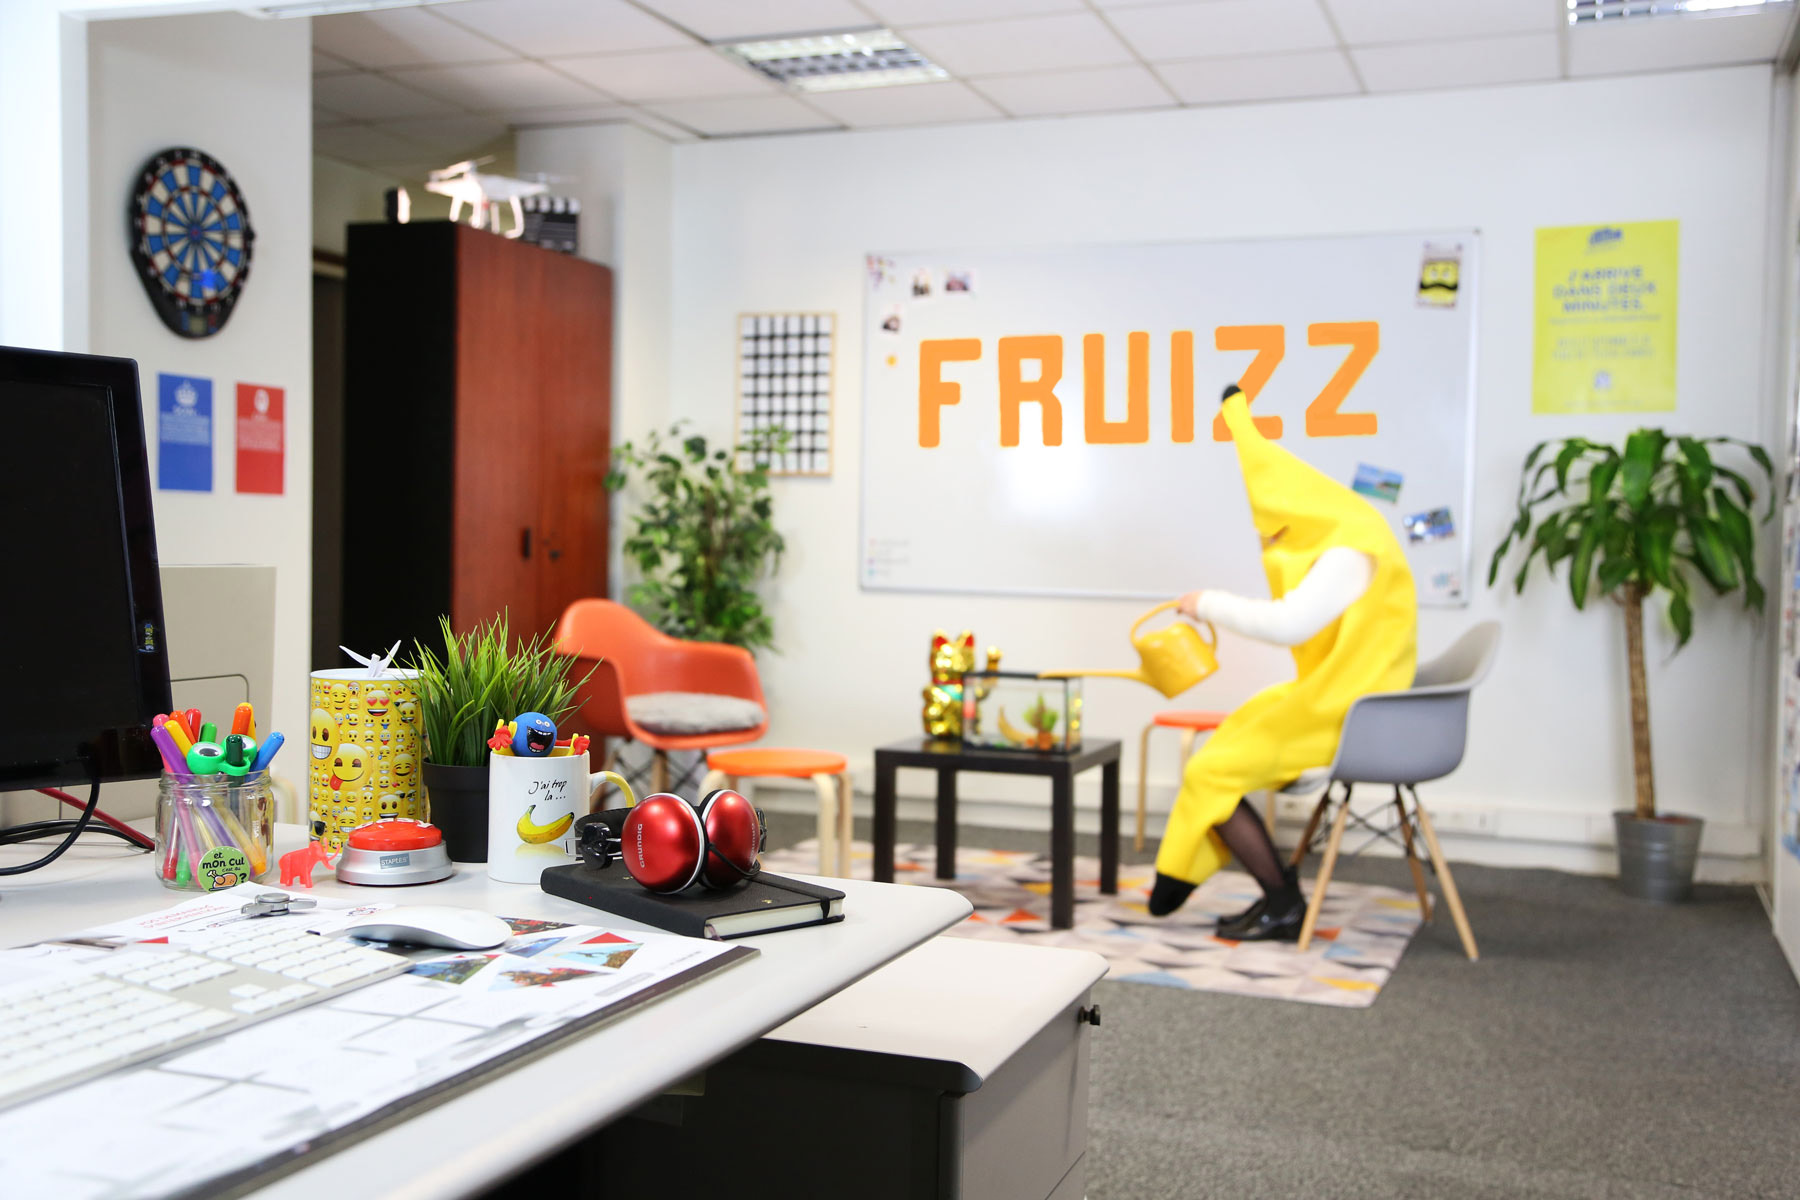 Fruizz Agence de communication Nantes